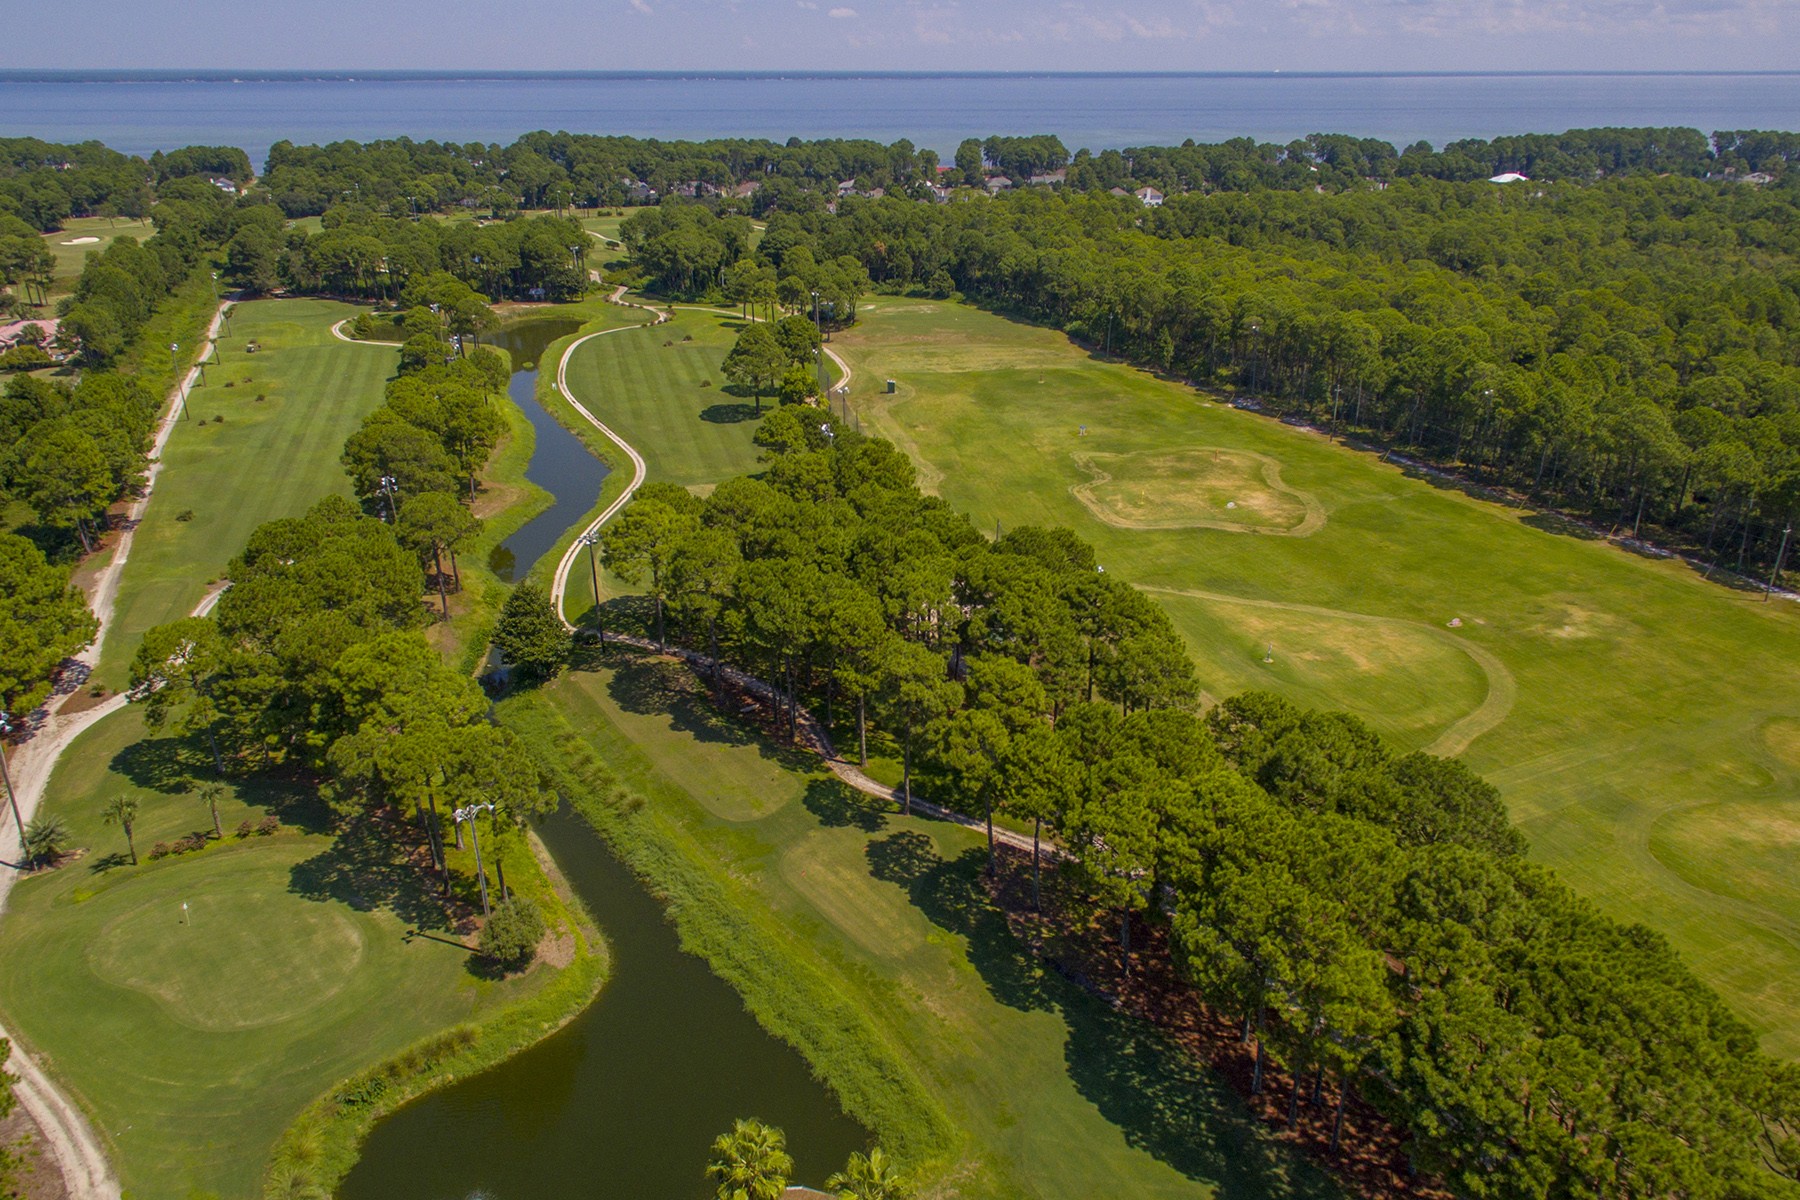 Terreno per Vendita alle ore RARE GOLF PROPERTY IS LAST OF ITS KIND 12958 W US Highway 98 Miramar Beach, Florida, 32550 Stati Uniti